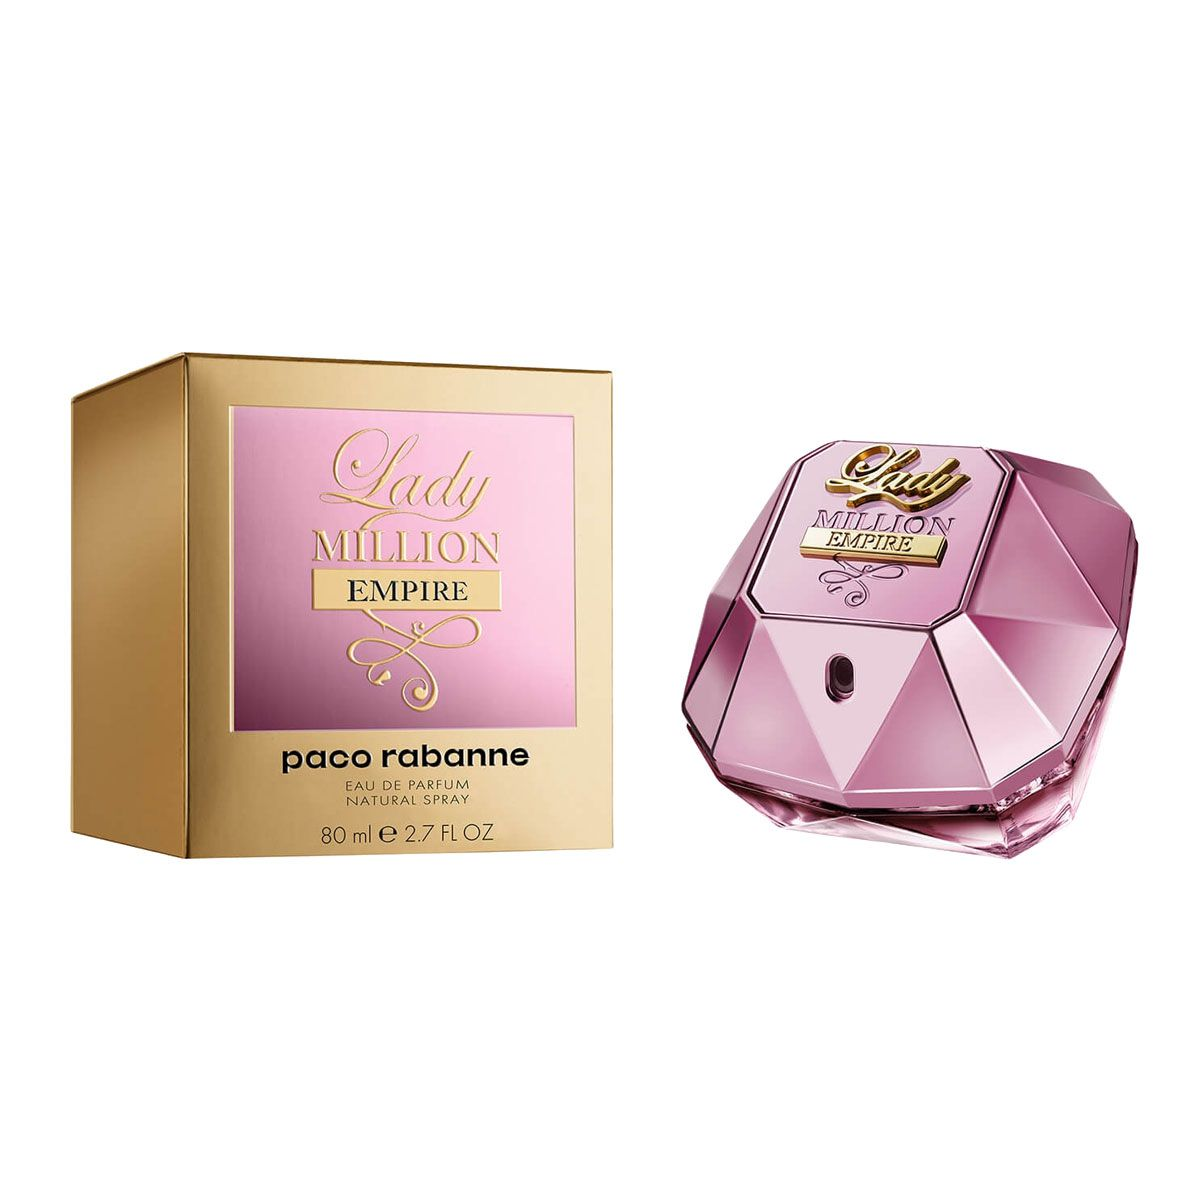 Lady Million Empire - Paco Rabanne Eau de Parfum - Perfume Feminino